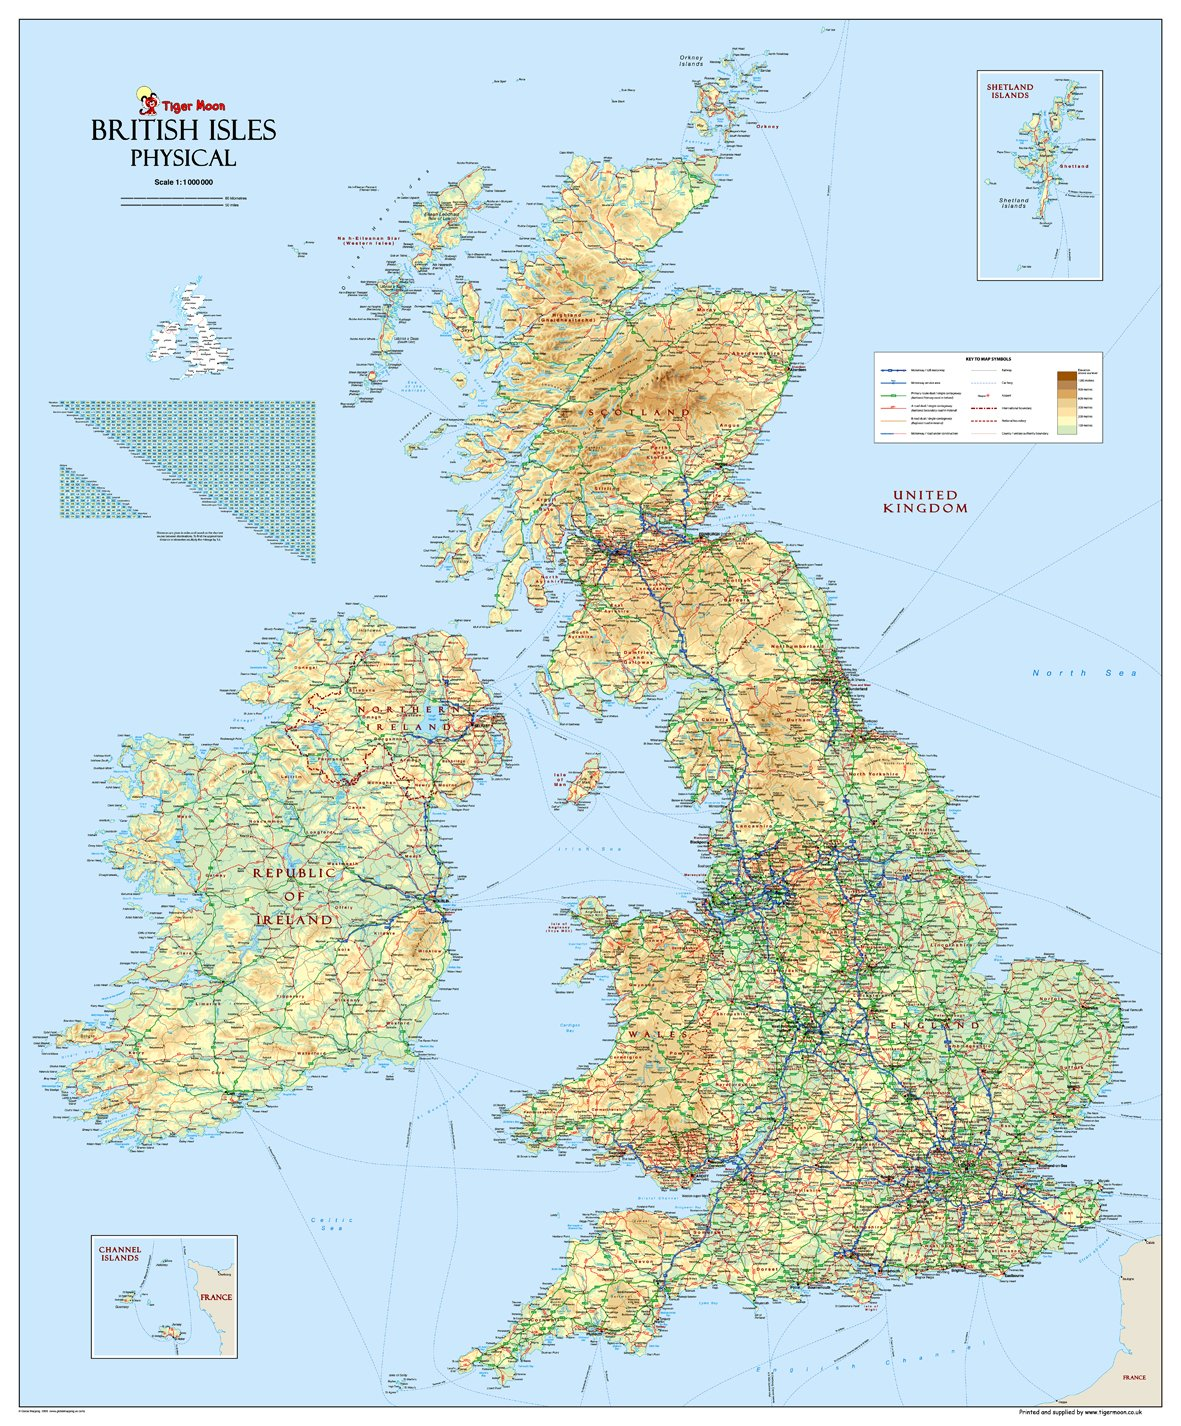 large british isles uk physical map vinyl 120 x 100 cm gm amazonco uk office products